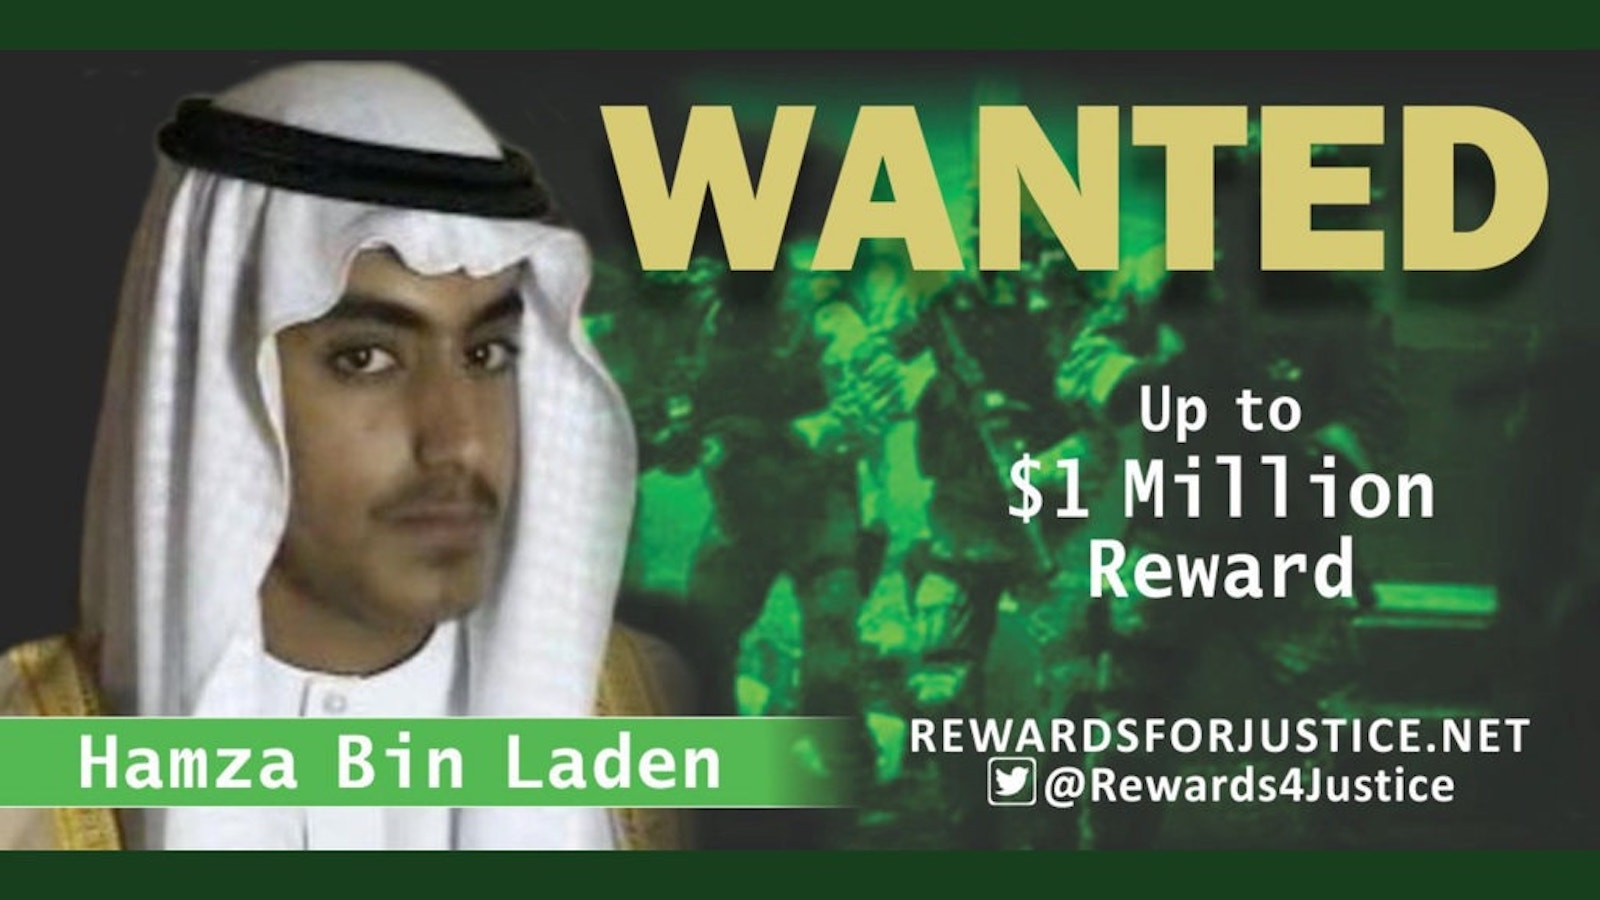 Wanted poster for Hamza bin Laden issued by the US State Department